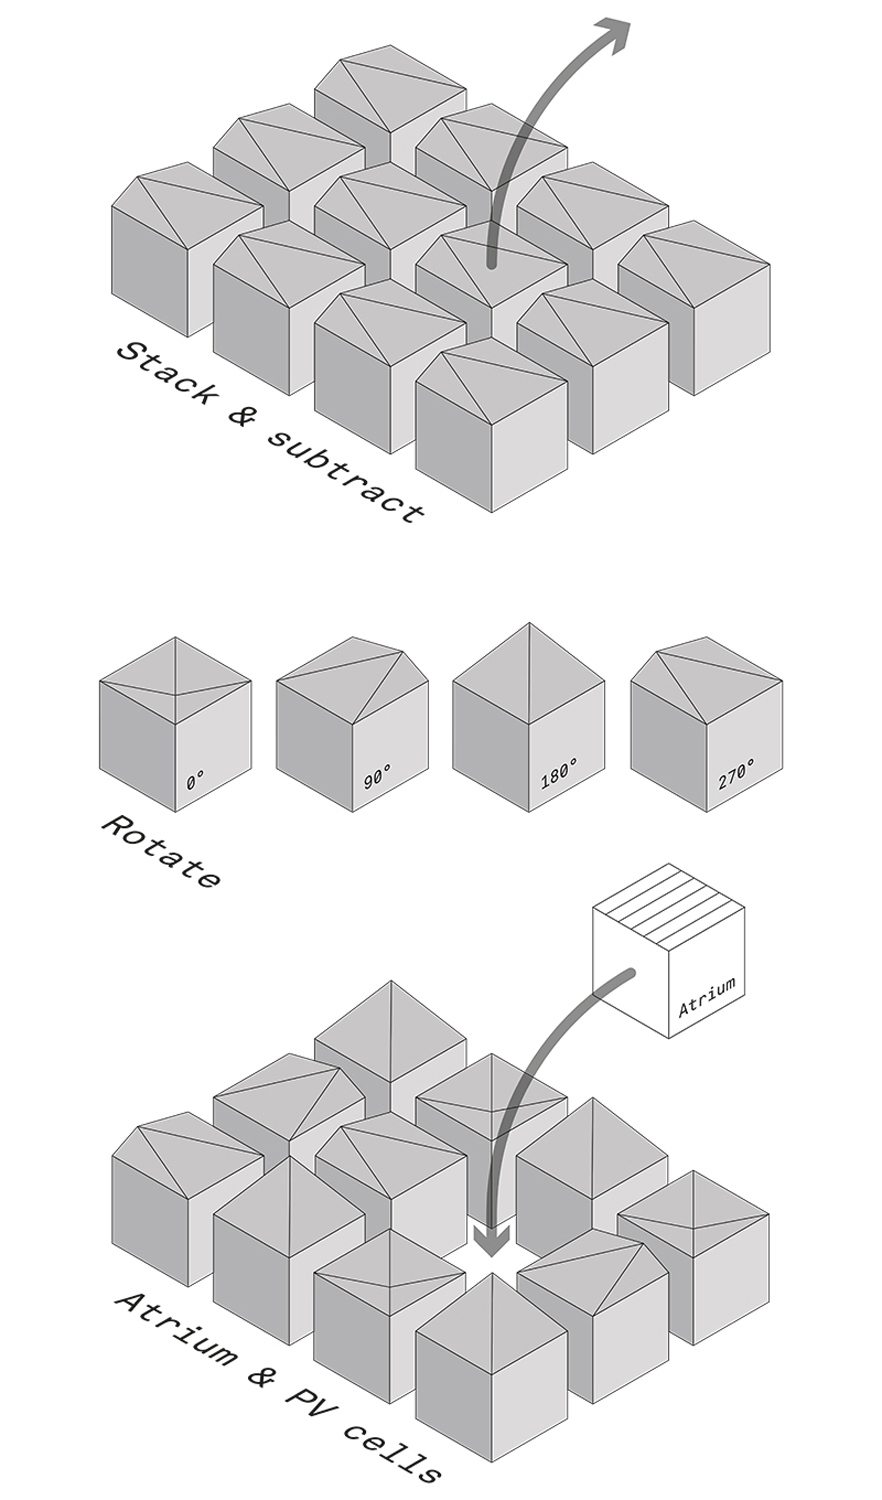 Building Block Concept FaulknerBrowns Architects}